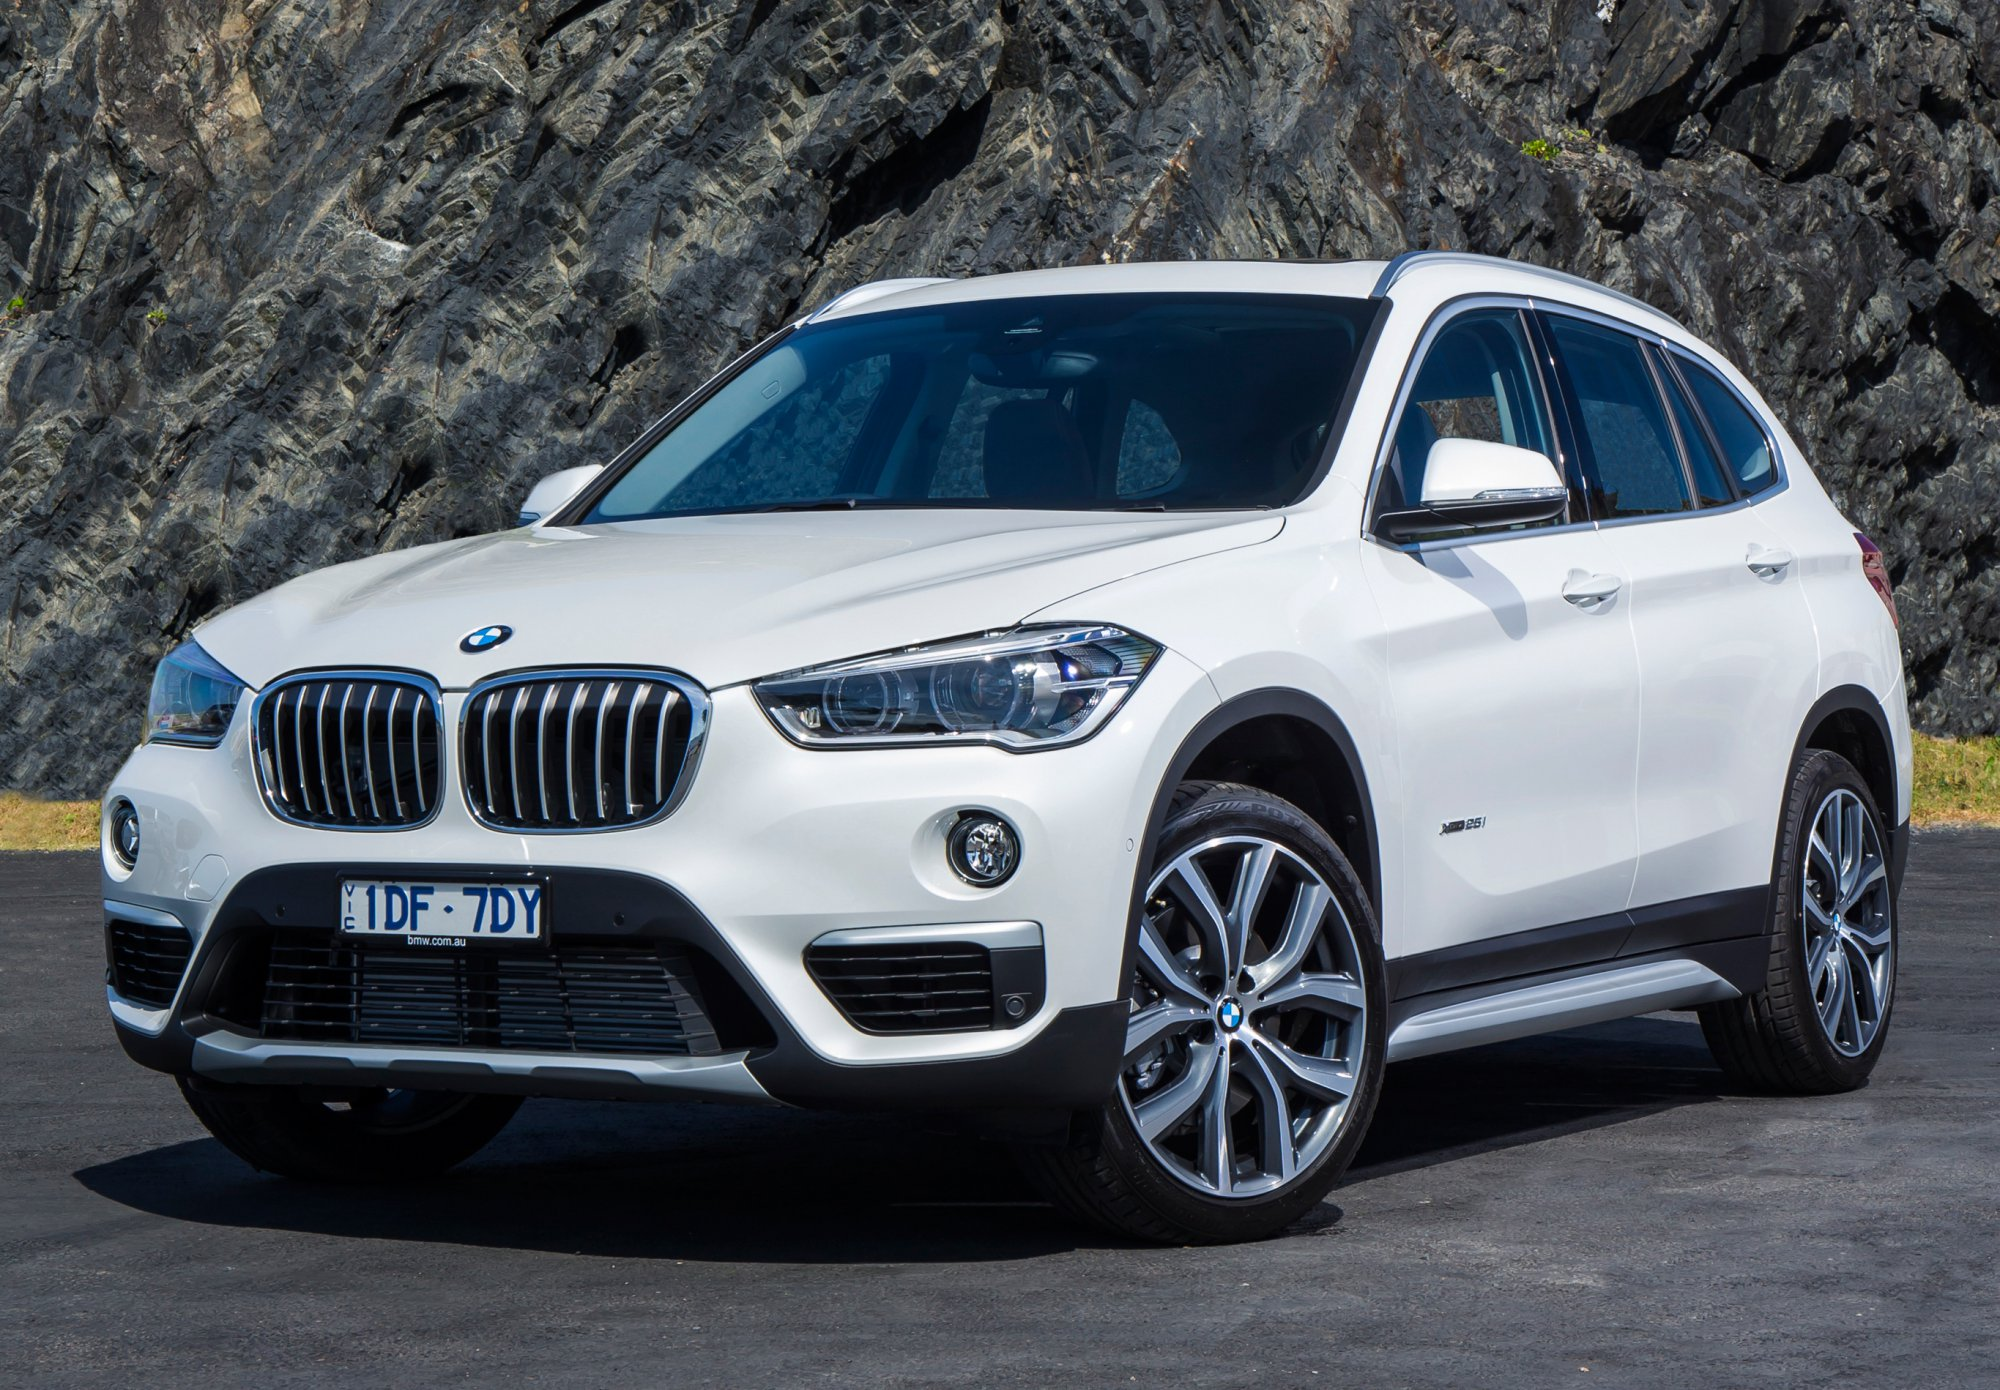 Review - 2017 BMW X1 - Review